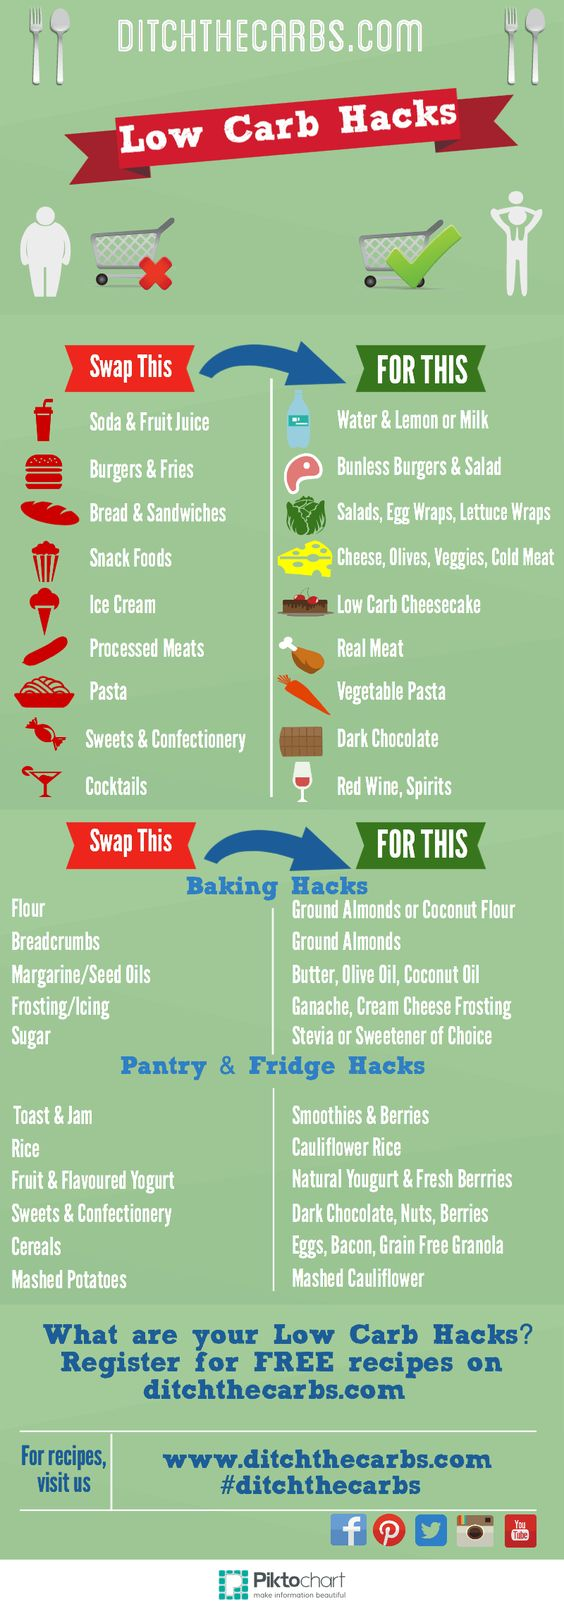 Bestselling Paleo Recipe Book http://www.healthyoptins.com/ Low Carb Hacks | ditchthecarbs.com / #lowcarb shared on https://facebook.com/lowcarbzen Paleo Living for a Healthier New You.